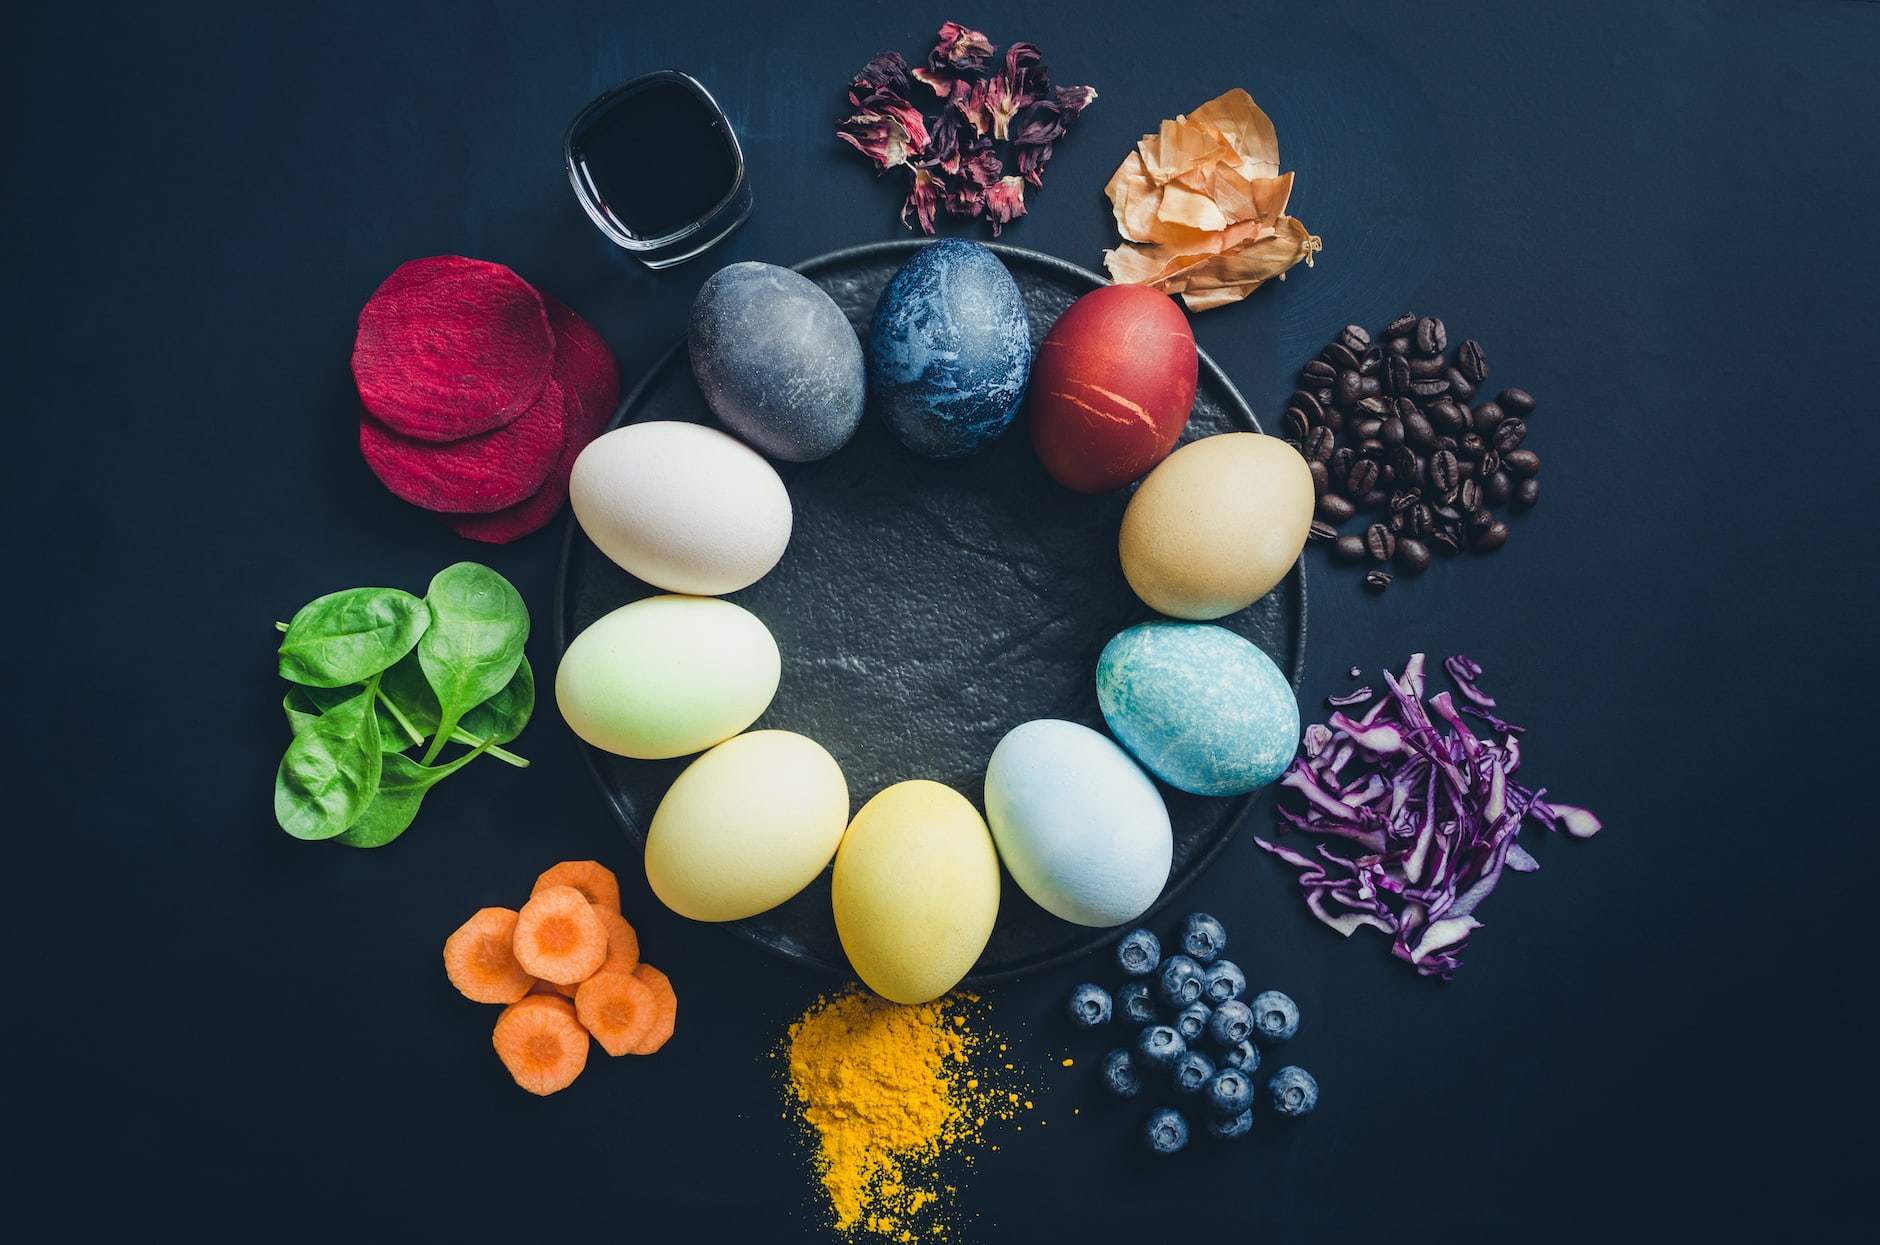 Easter eggs painted with natural egg dye from fruits and vegetables. Homemade naturally dyed Easter eggs with ingredients.